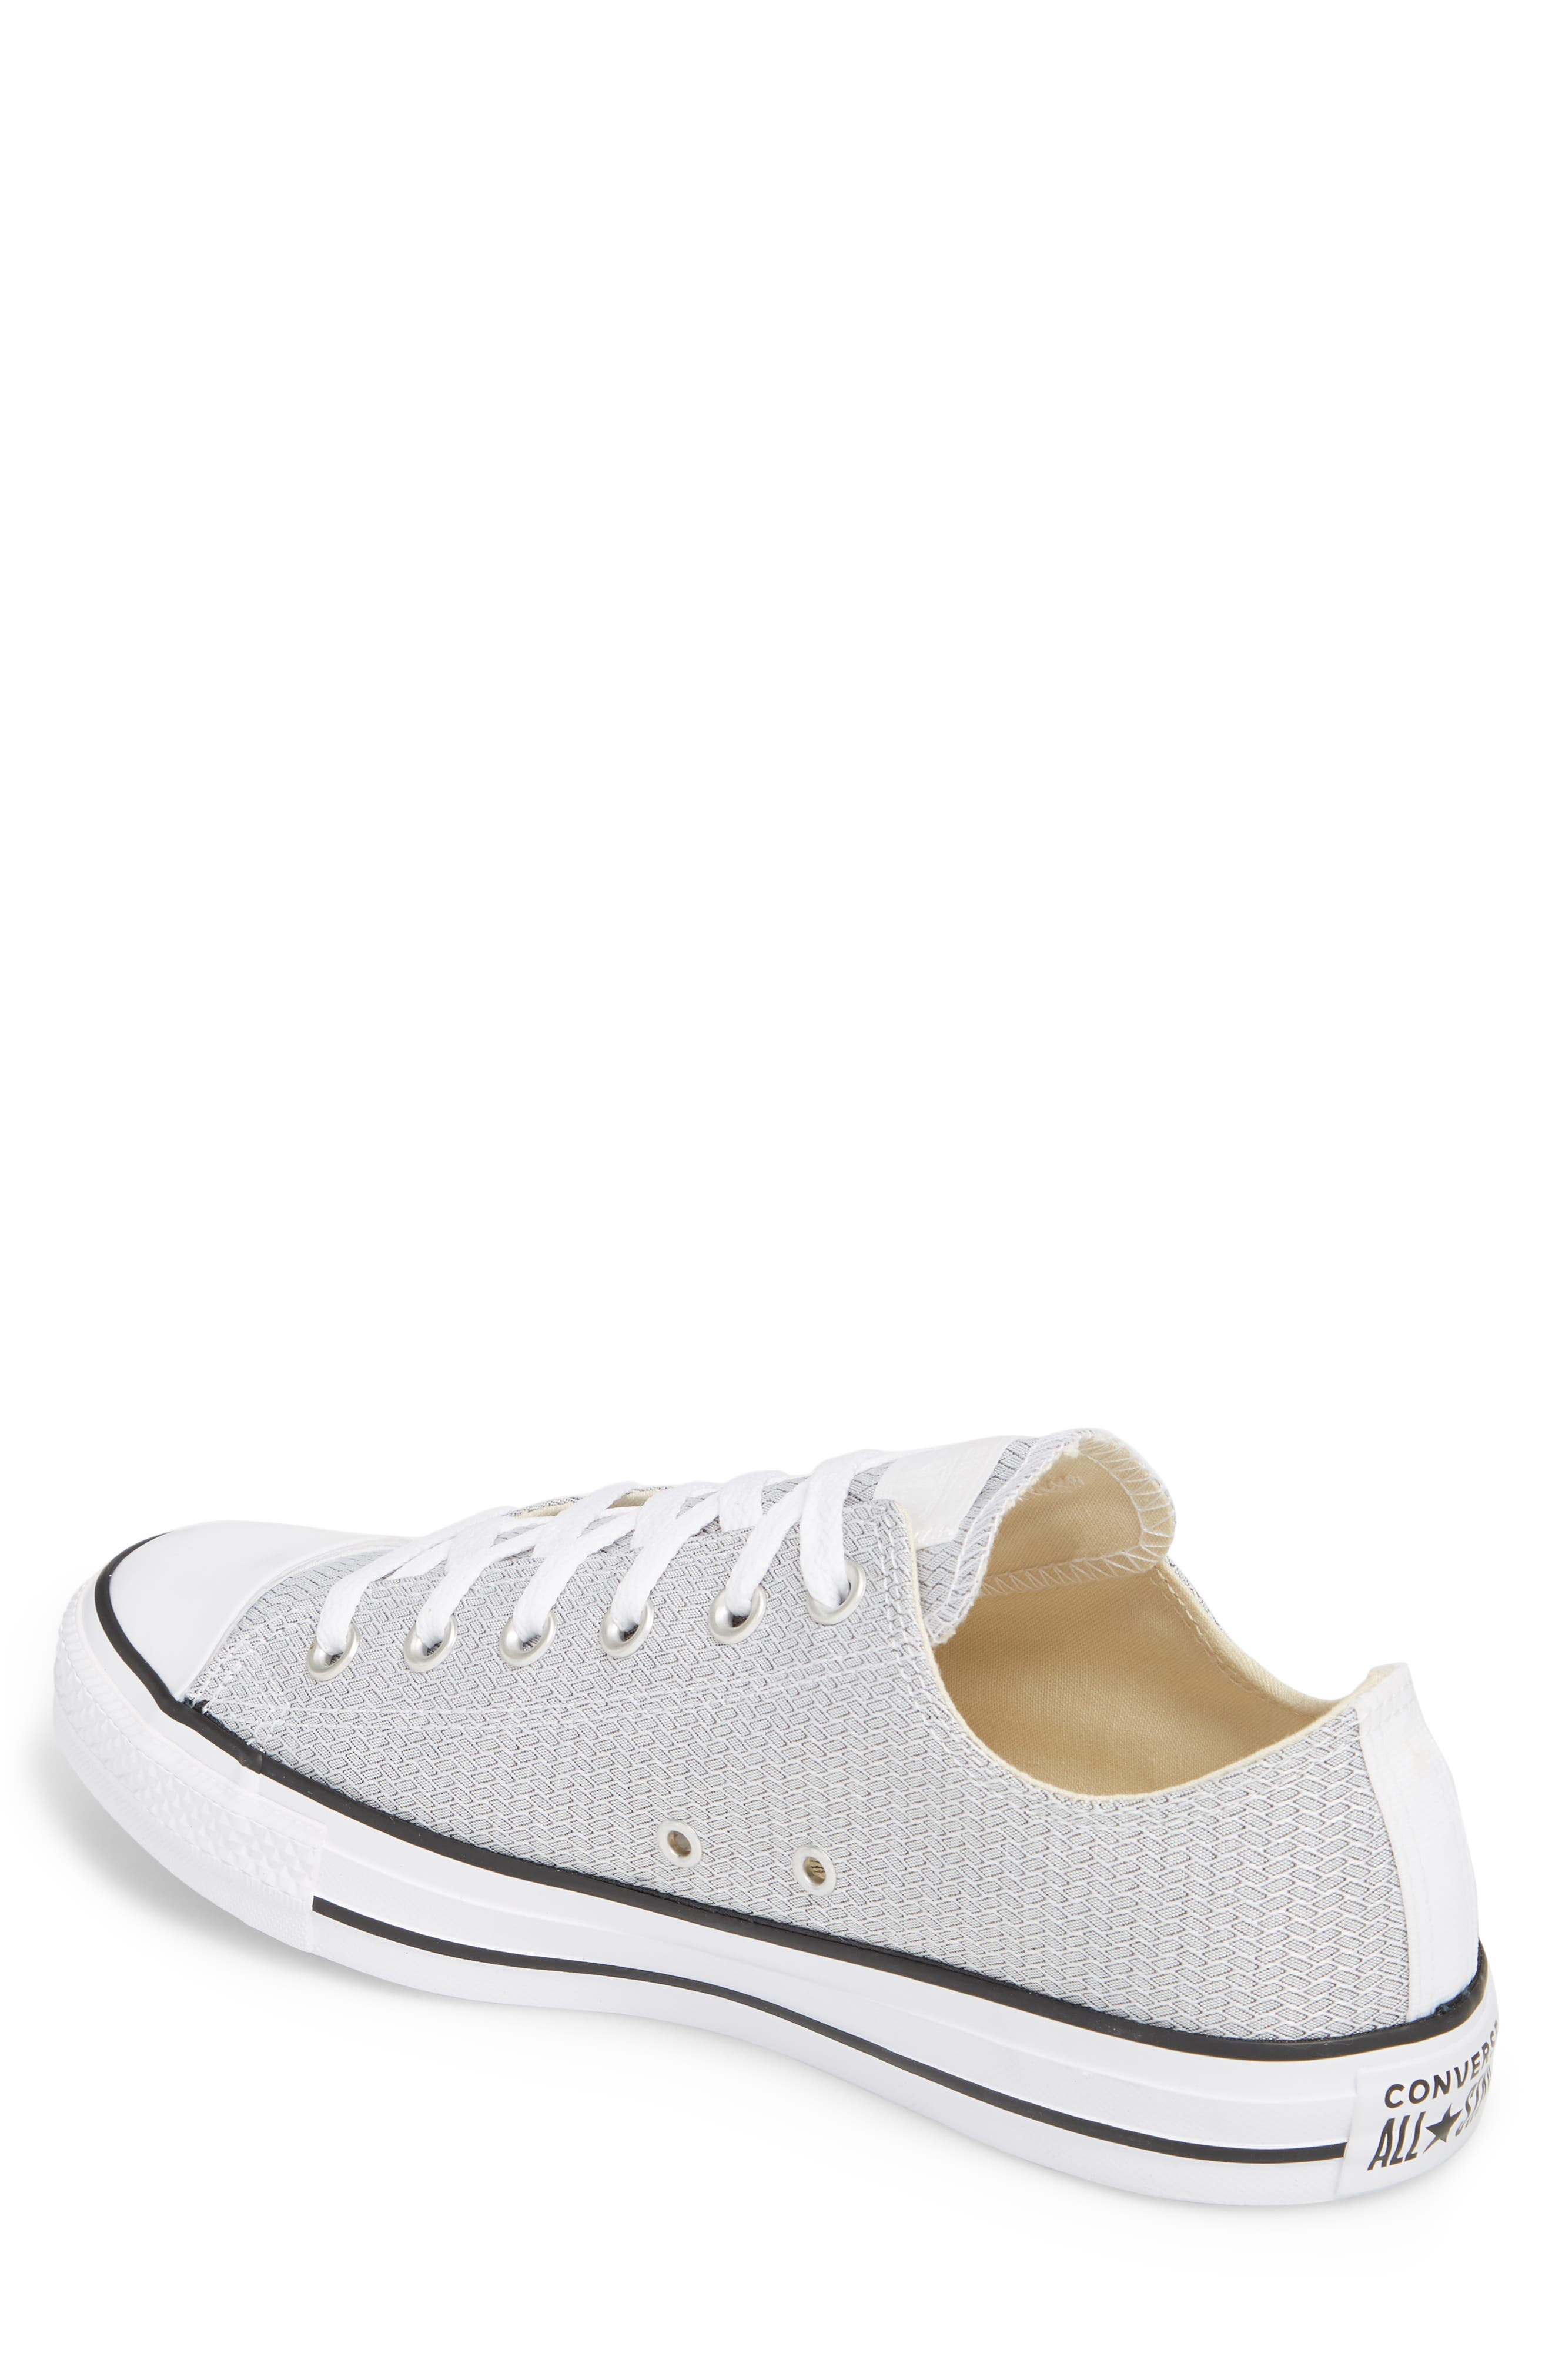 All Star<sup>®</sup> Ripstop Low Top Sneaker,                             Alternate thumbnail 3, color,